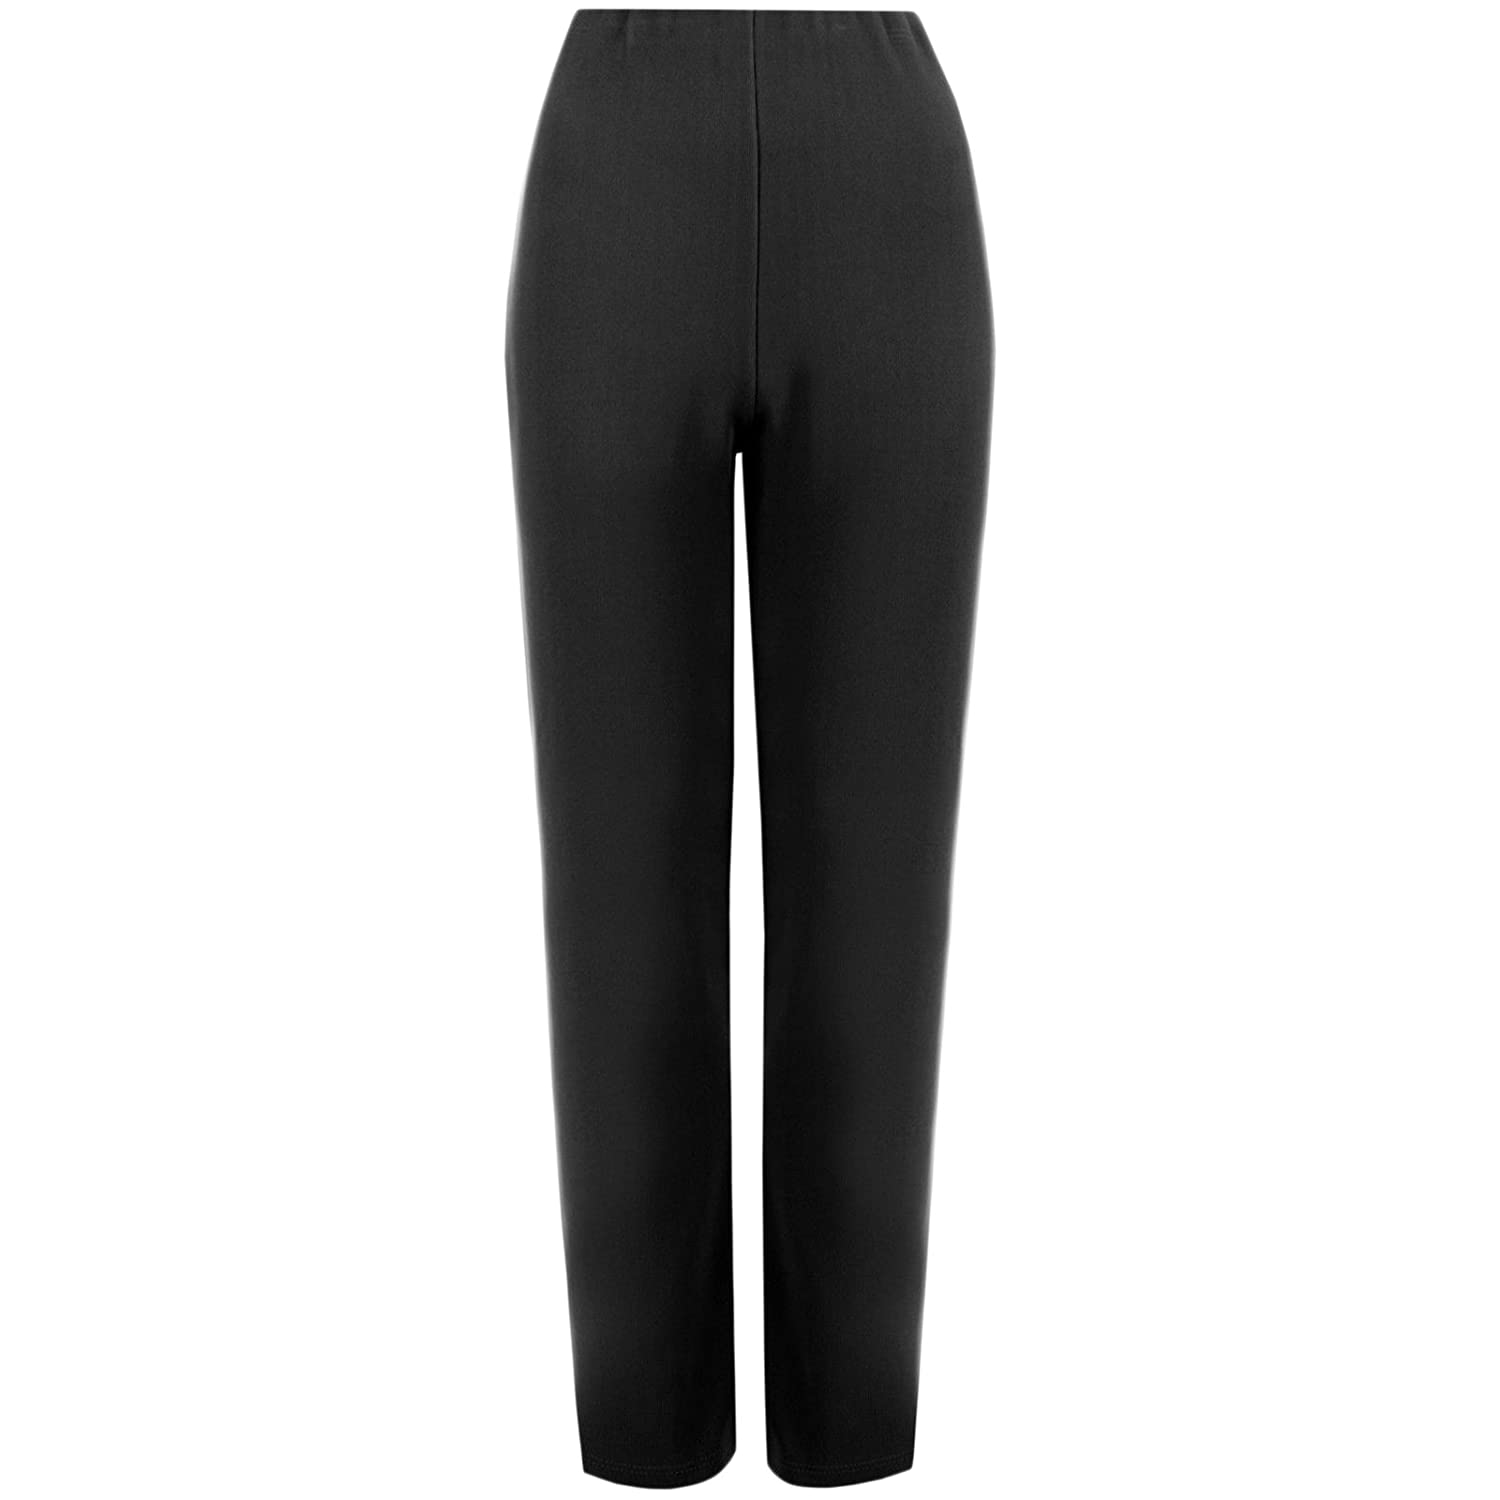 MyShoeStore Pack of 2 Ladies Womens Straight Leg Trousers Finely Soft Ribbed Stretch Pull on Pants Casual Full Elasticated Waist Bottoms Plus Sizes 8-24